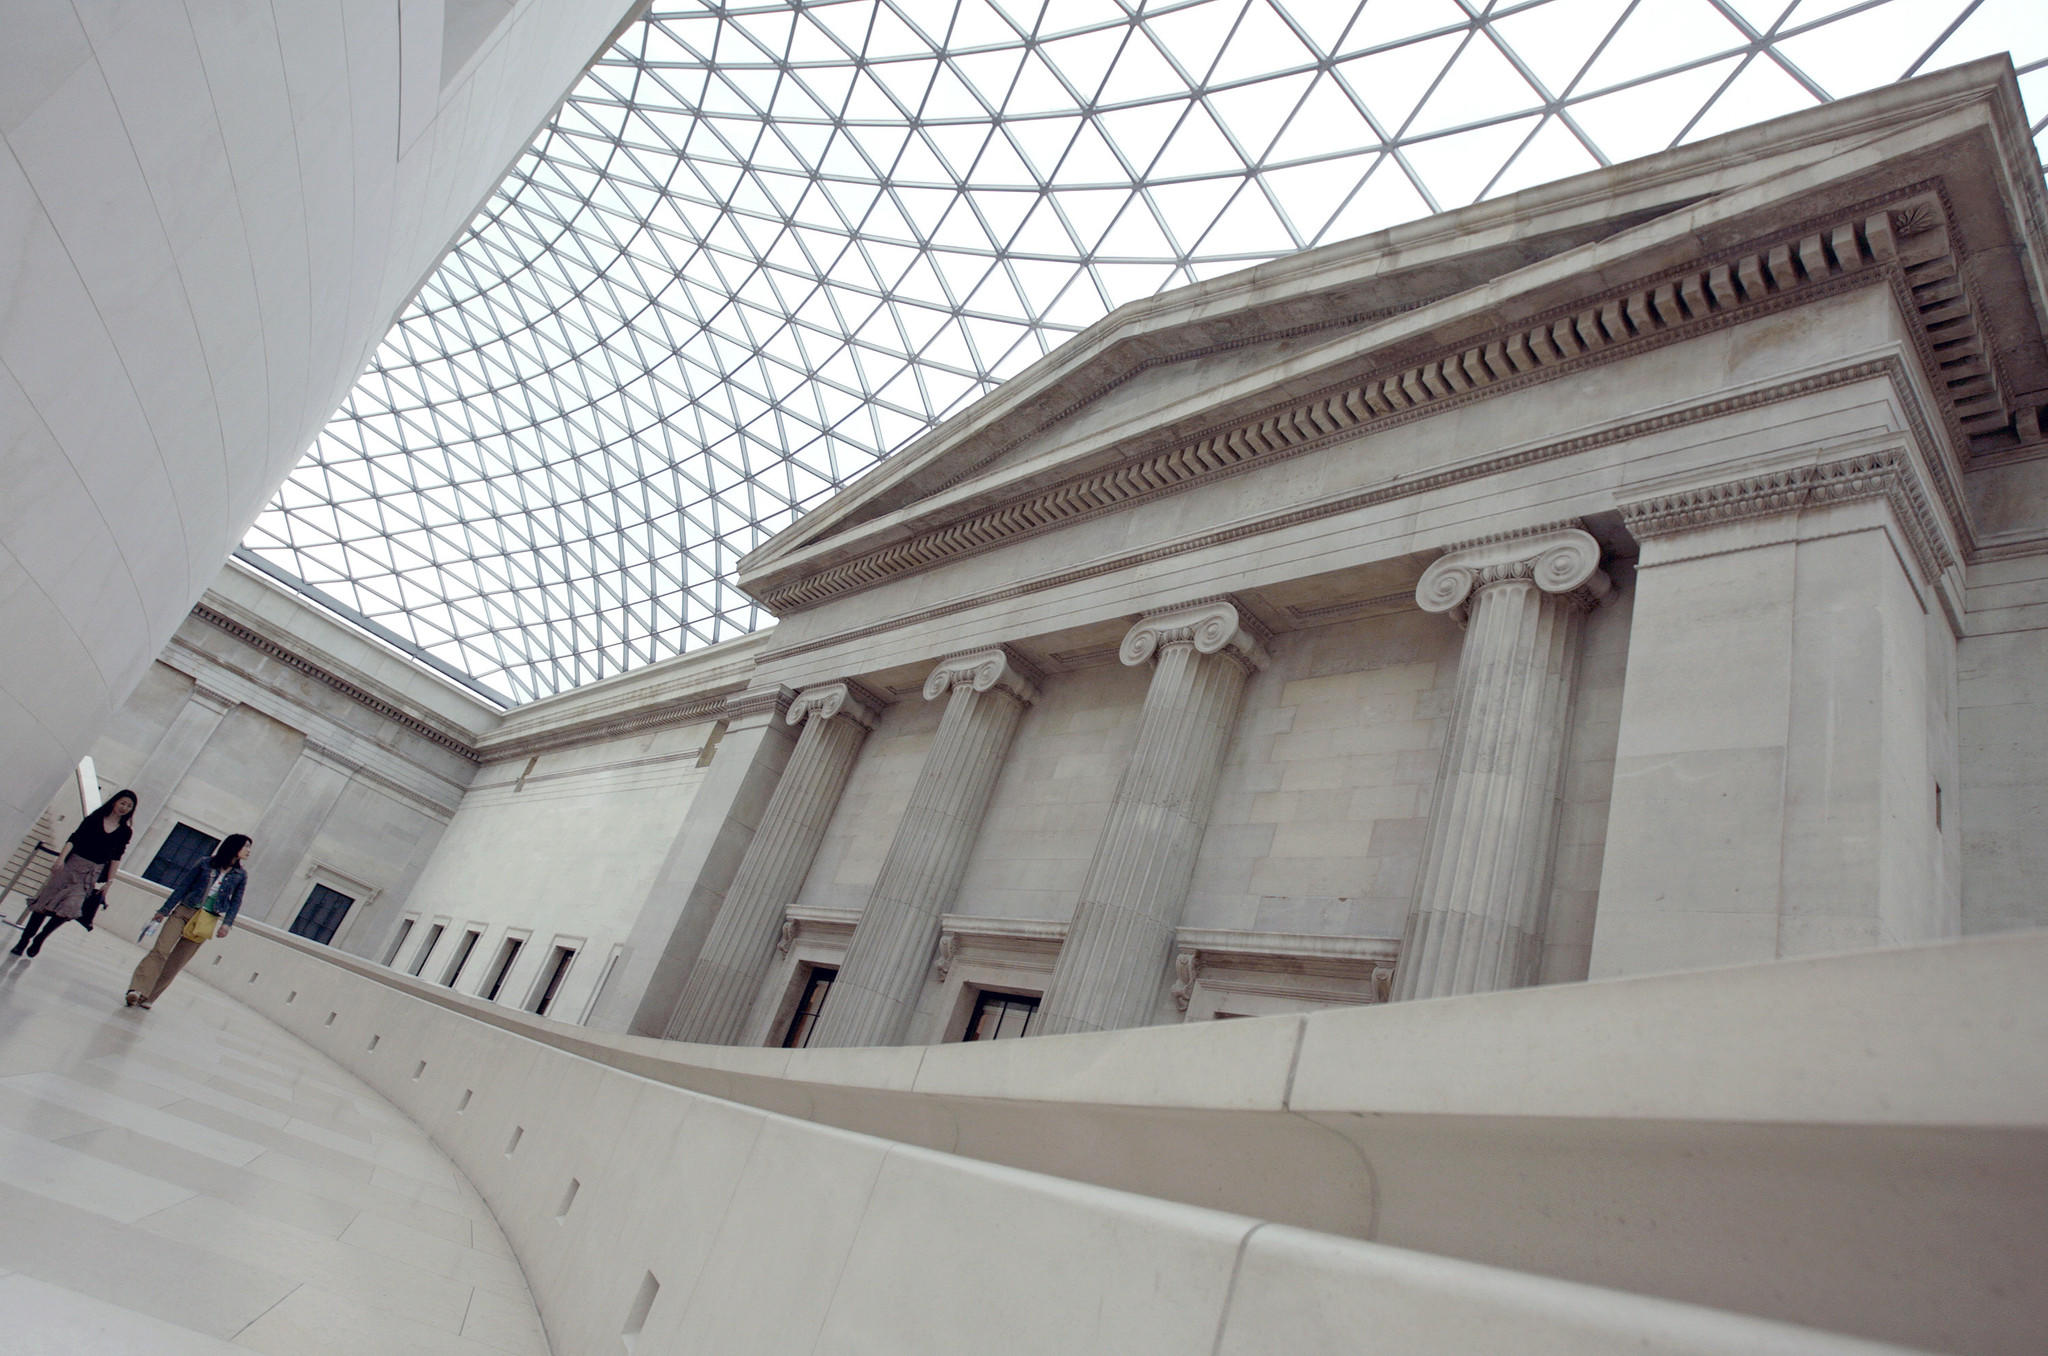 The Great Court of the British Museum is seen in London April 11, 2007. Researchers from Durham University and the British Museum discovered the evidence of tumours that had developed and spread throughout the body in a 3,000-year-old skeleton found in a tomb in modern Sudan in 2013.